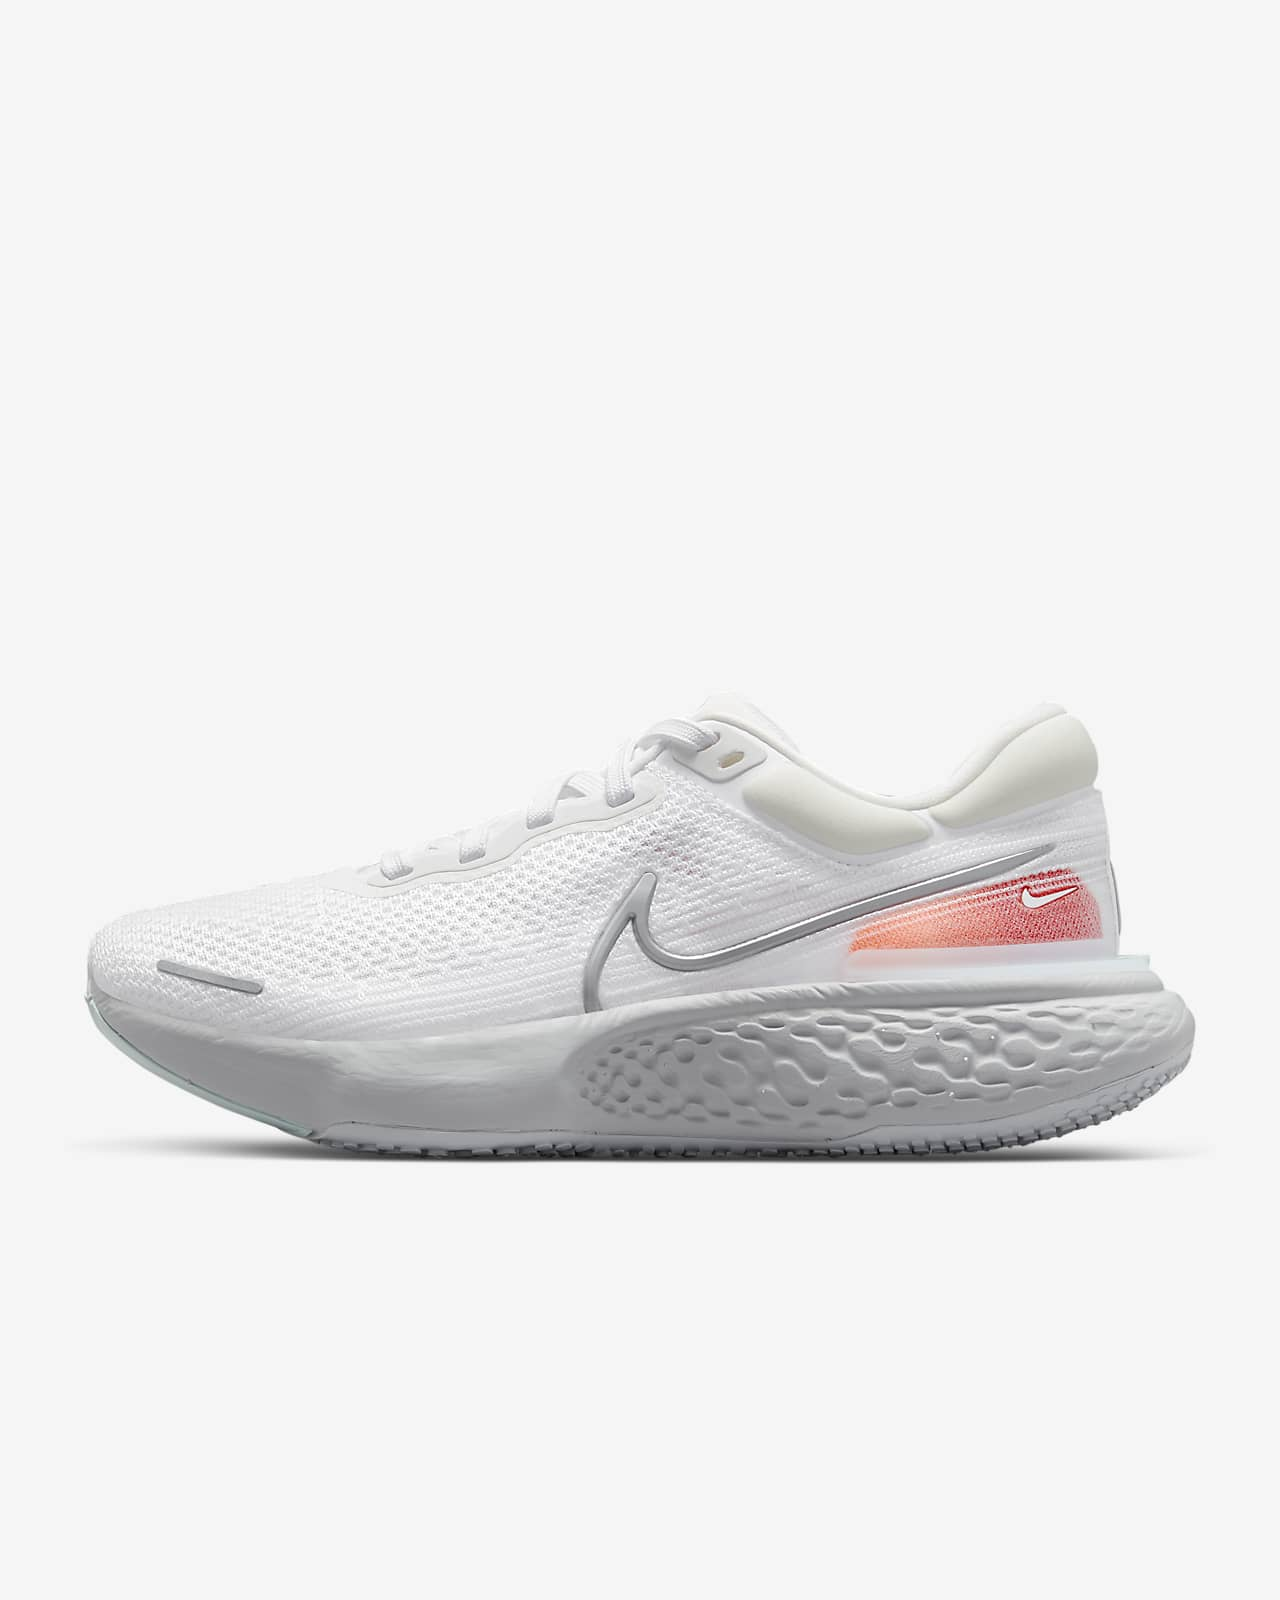 Chaussures de running Nike ZoomX Invincible Run Flyknit pour Homme ...